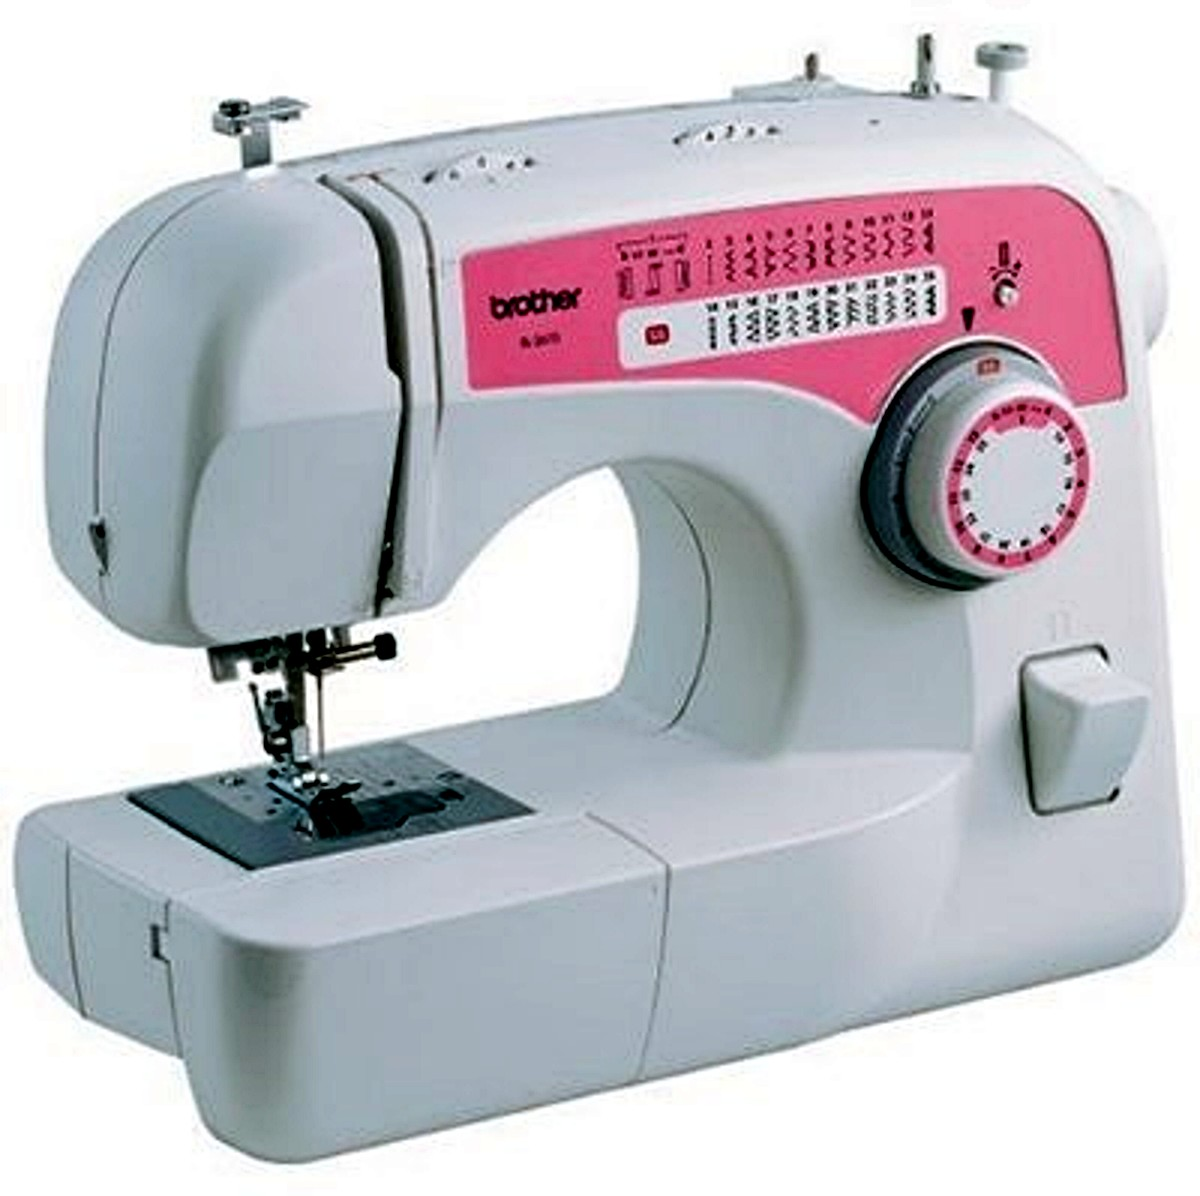 Brother XL2610 Sewing Machine